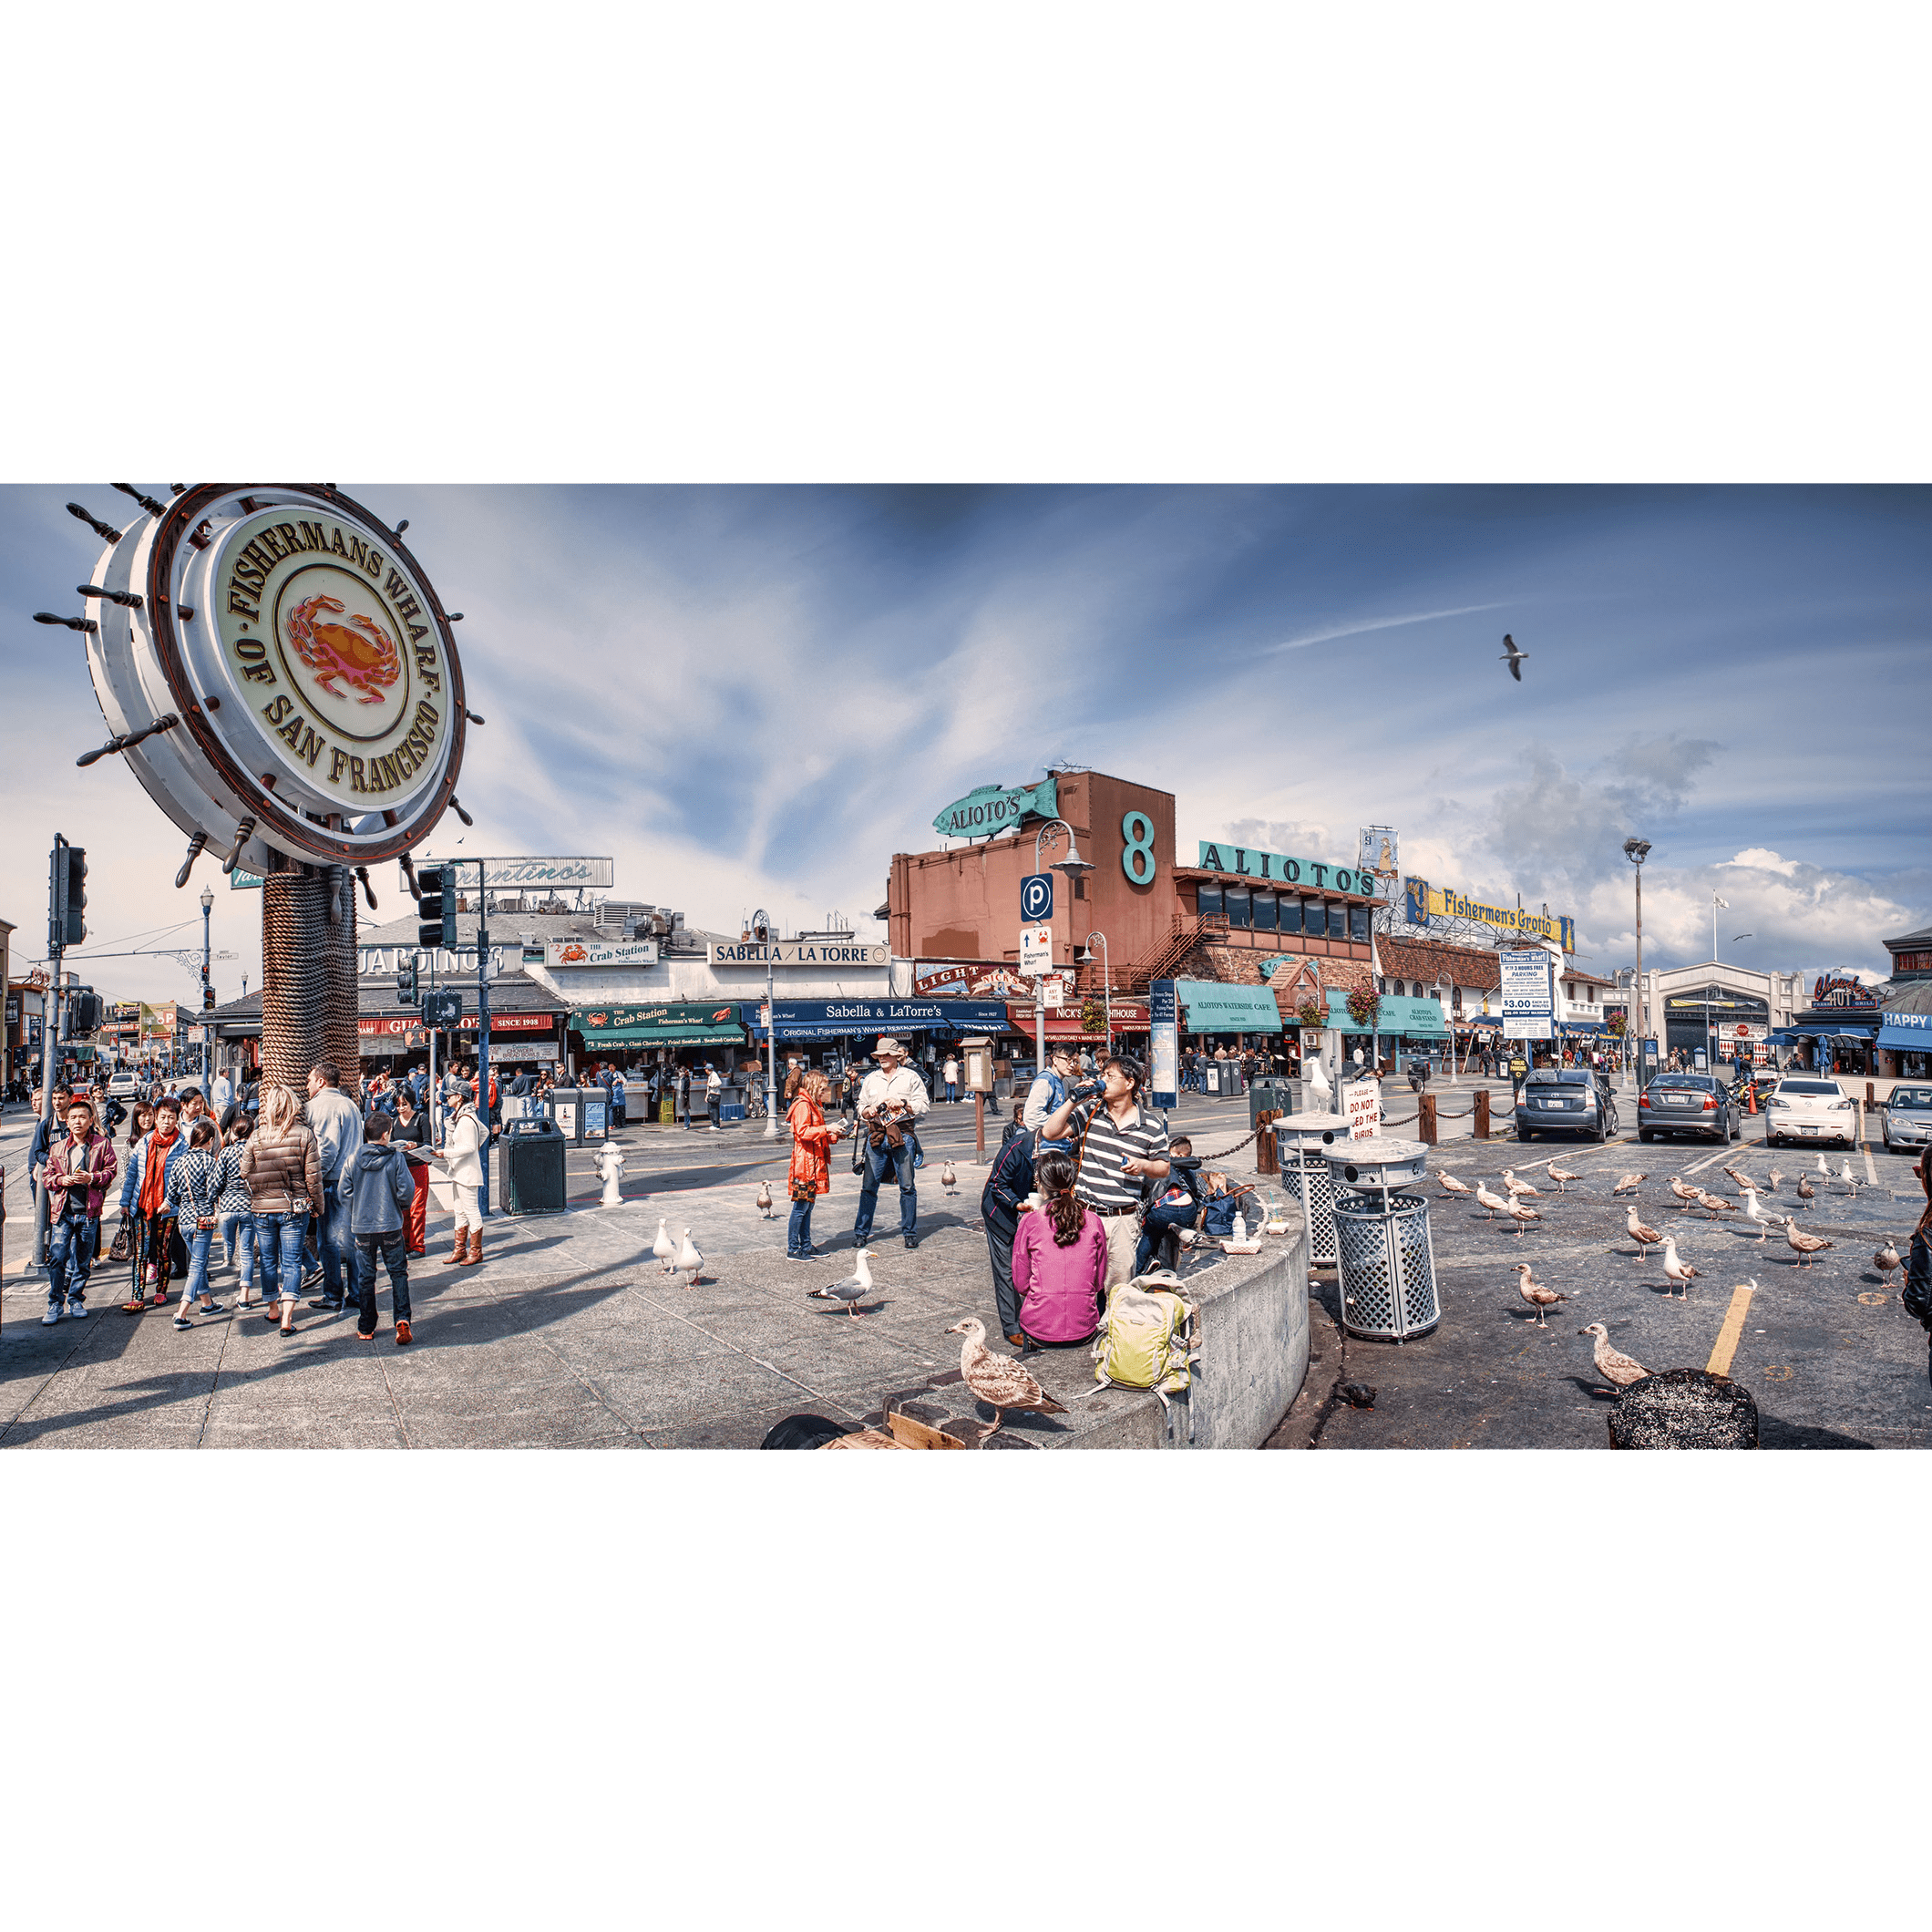 Food Chains Of Fishermans Wharf